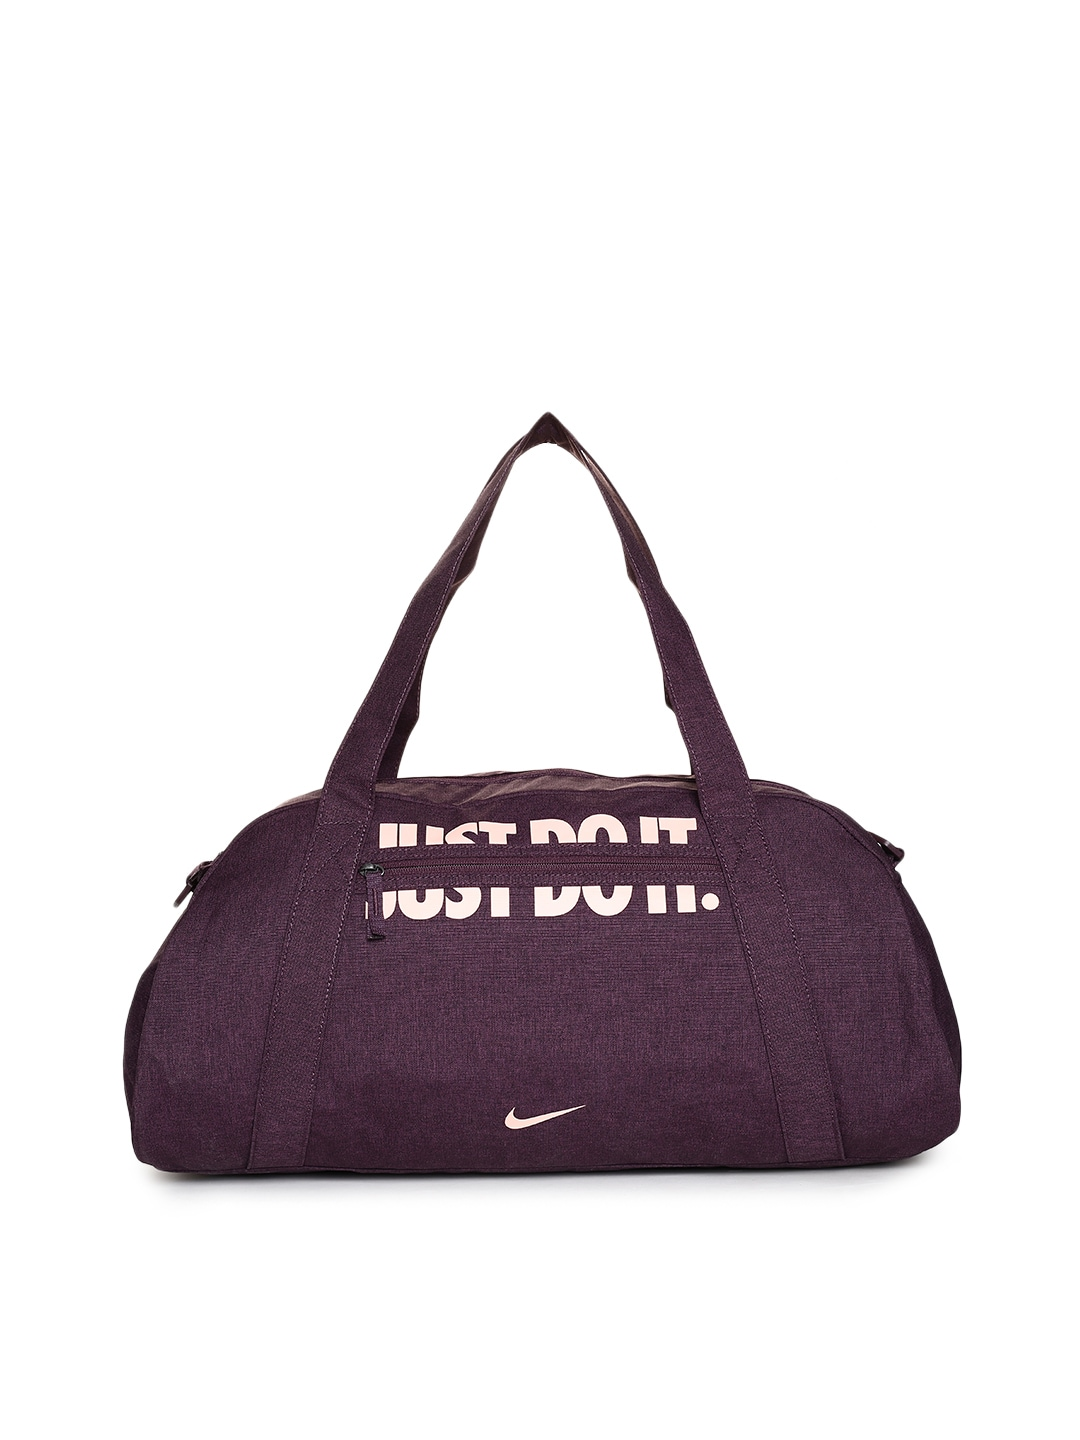 6157179056 Gym Bag - Buy Gym Bags for Men